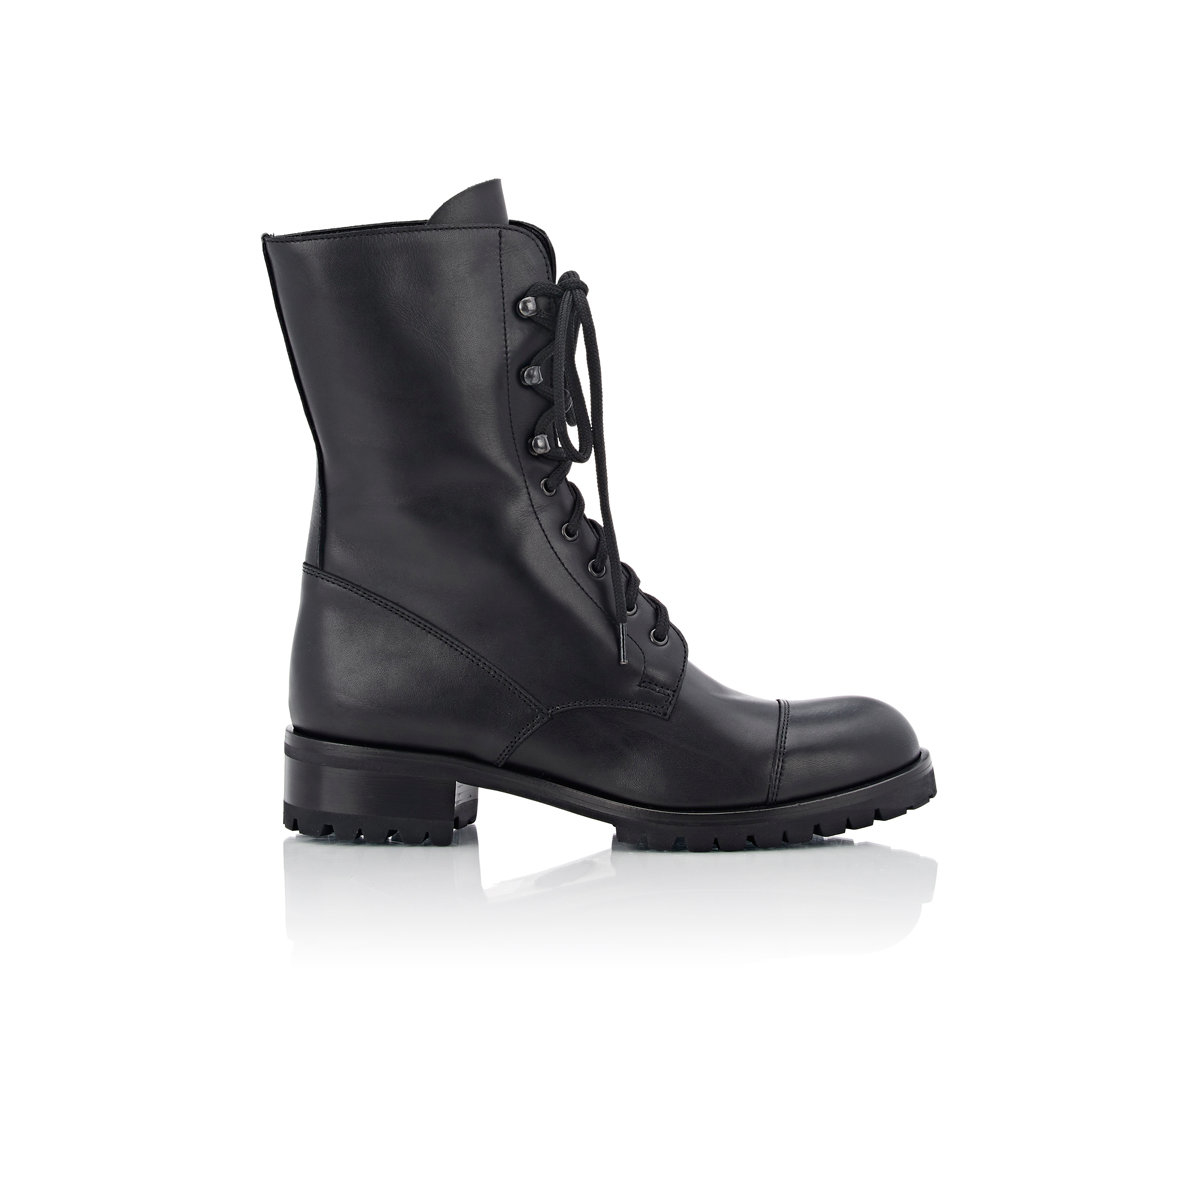 barneys new york women 39 s yara combat boots in black lyst. Black Bedroom Furniture Sets. Home Design Ideas